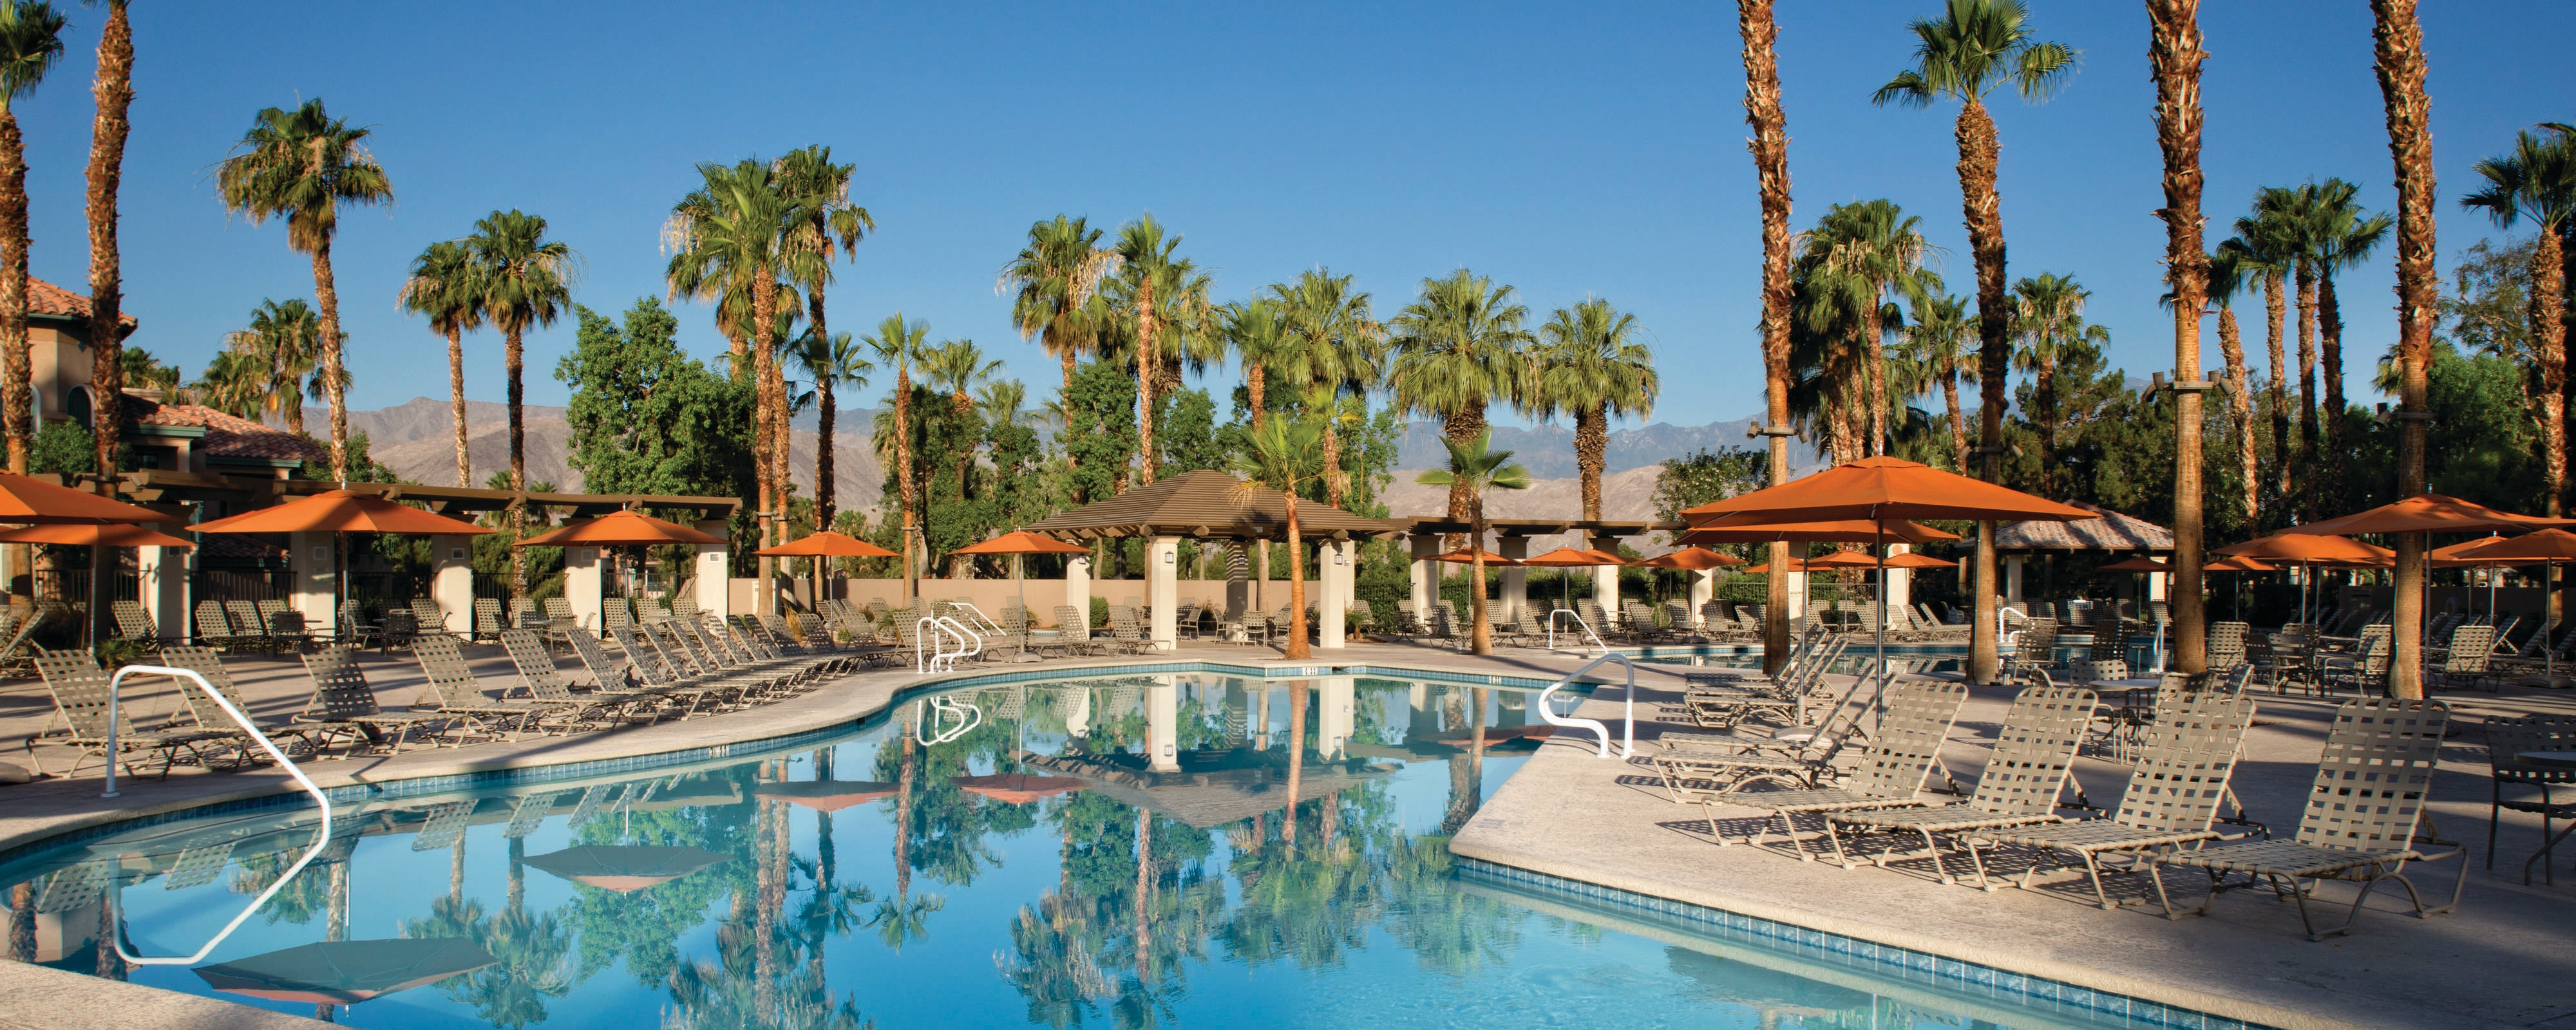 Palm Desert Resort with Pool